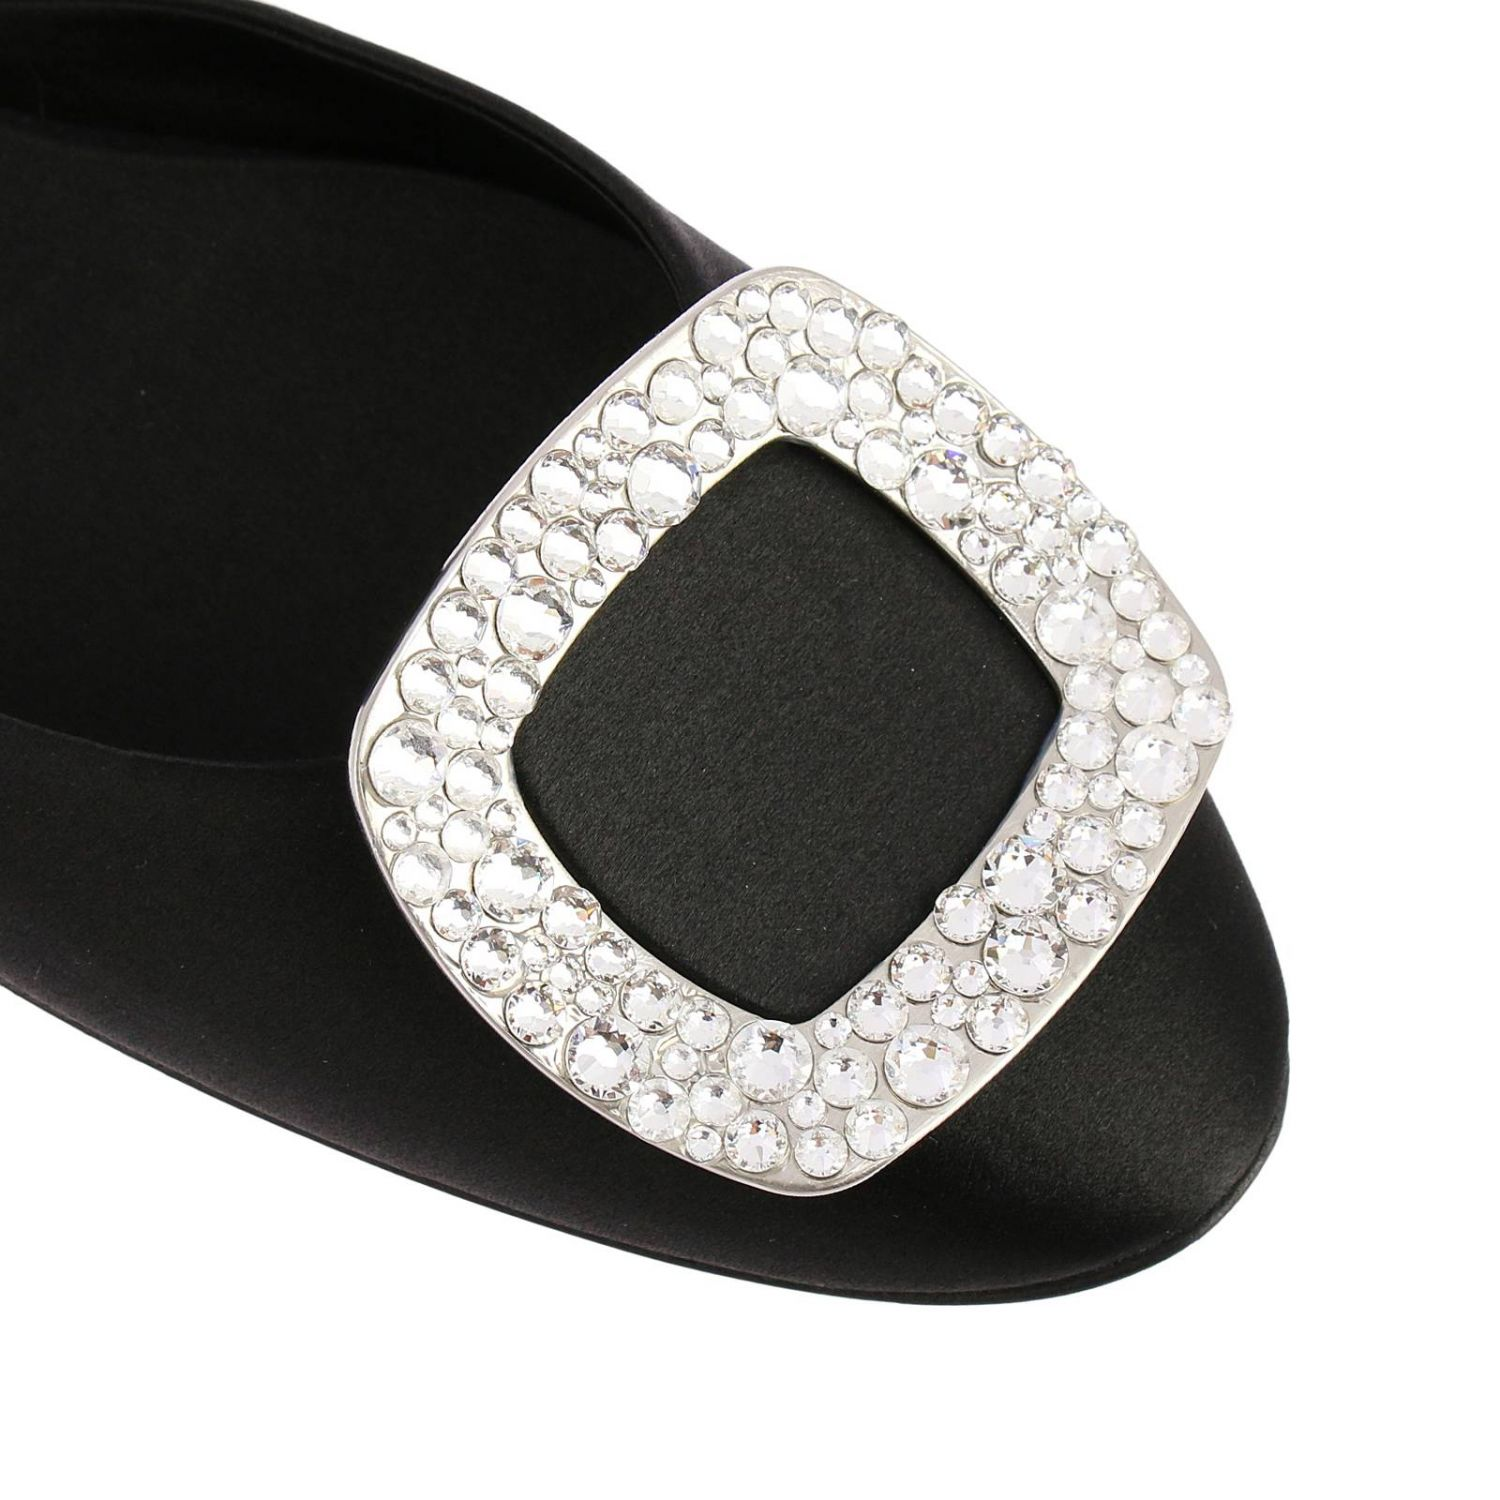 Chips ballet flats with rhinestone buckle in satin black 3